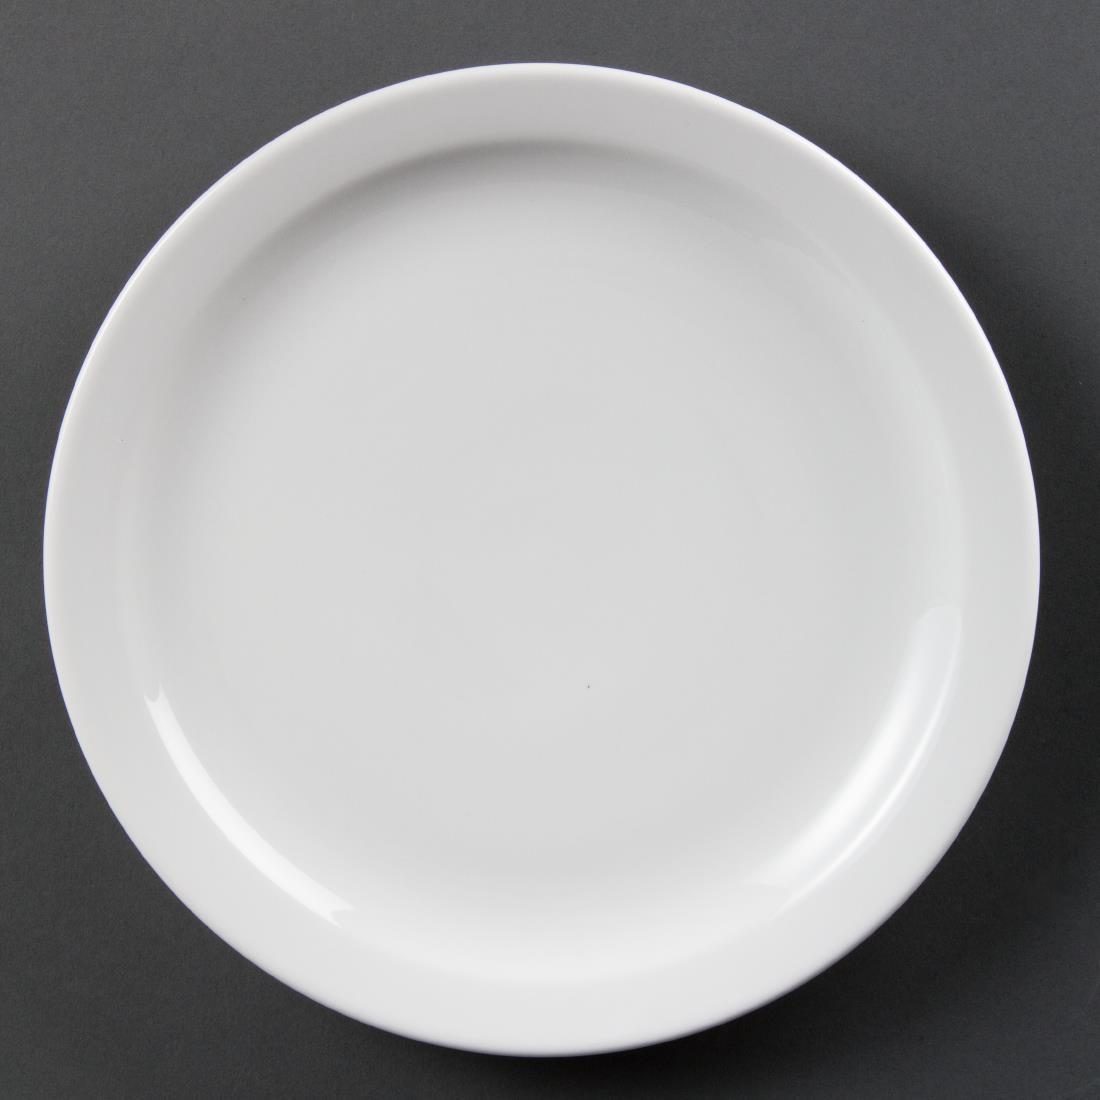 Bulk Buy Pack of 36 Olympia Whiteware Narrow Rimmed Plates 250mm